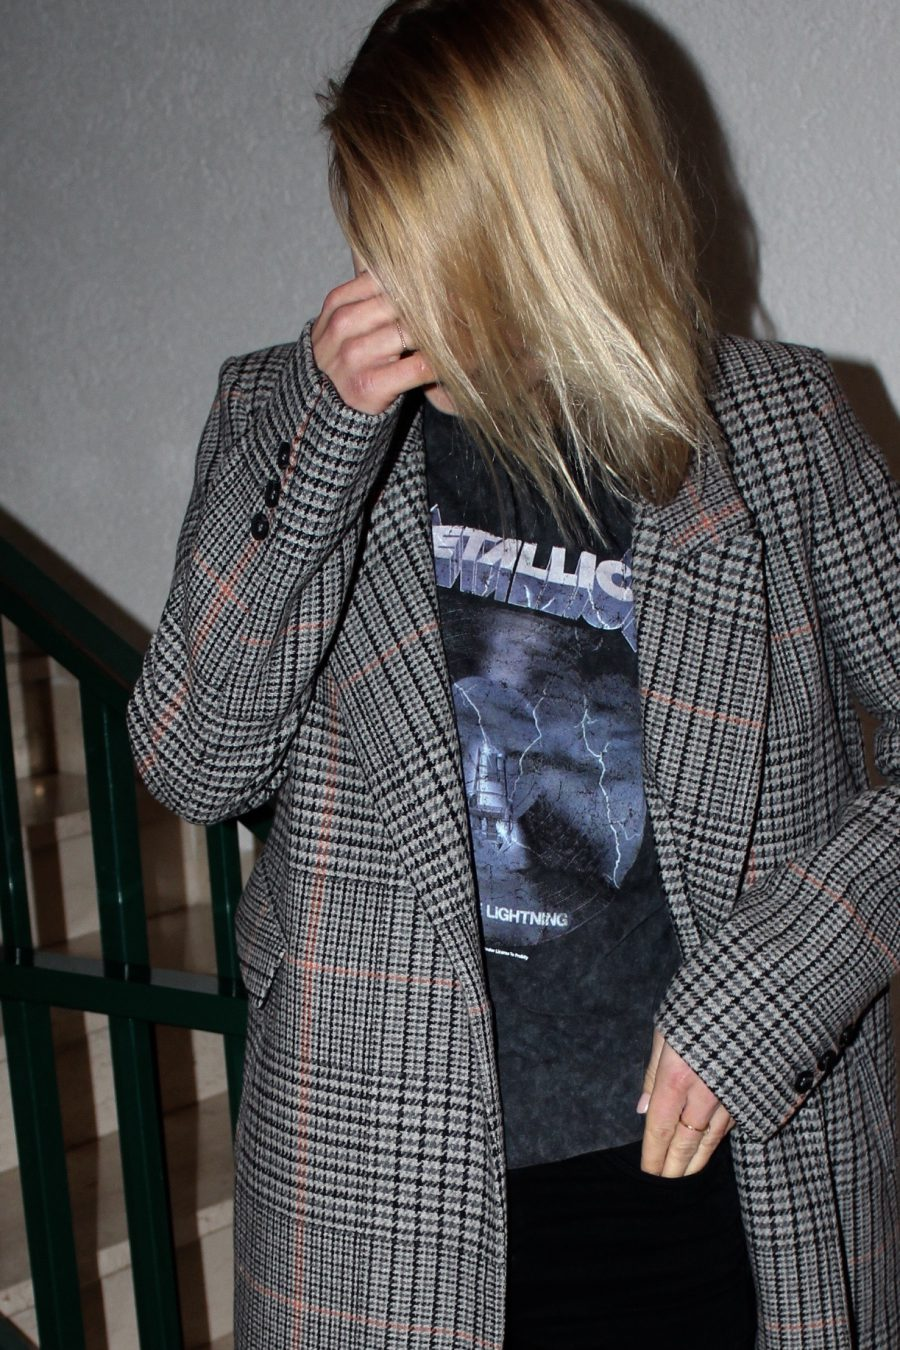 metallica Shirt H&M